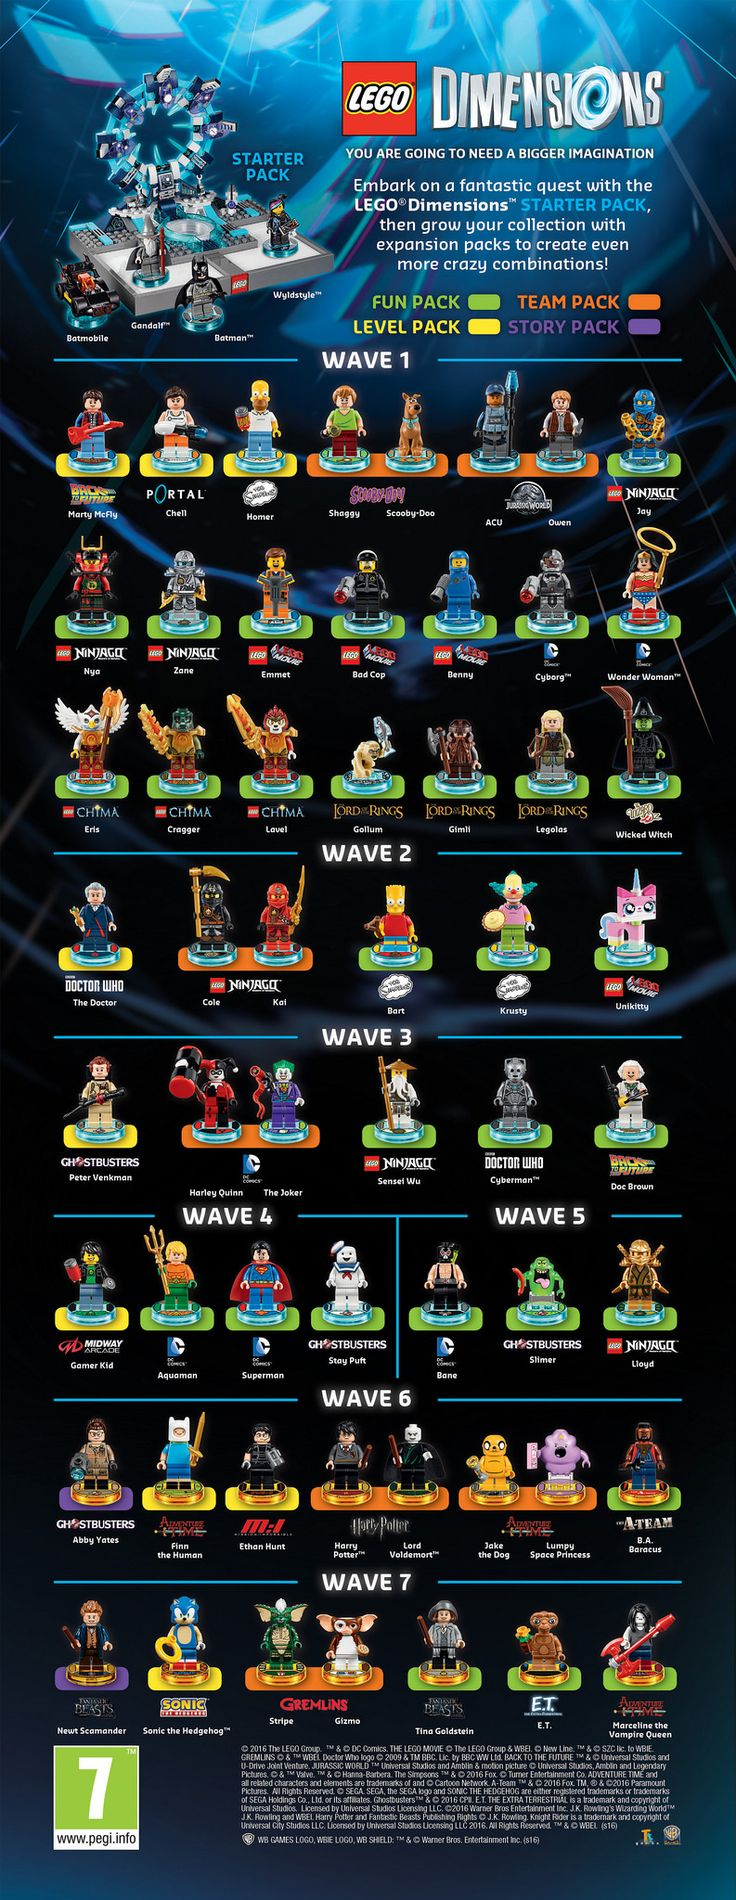 LEGO Dimensions | Read more here: www.thebrickfan.com/update… | Flickr